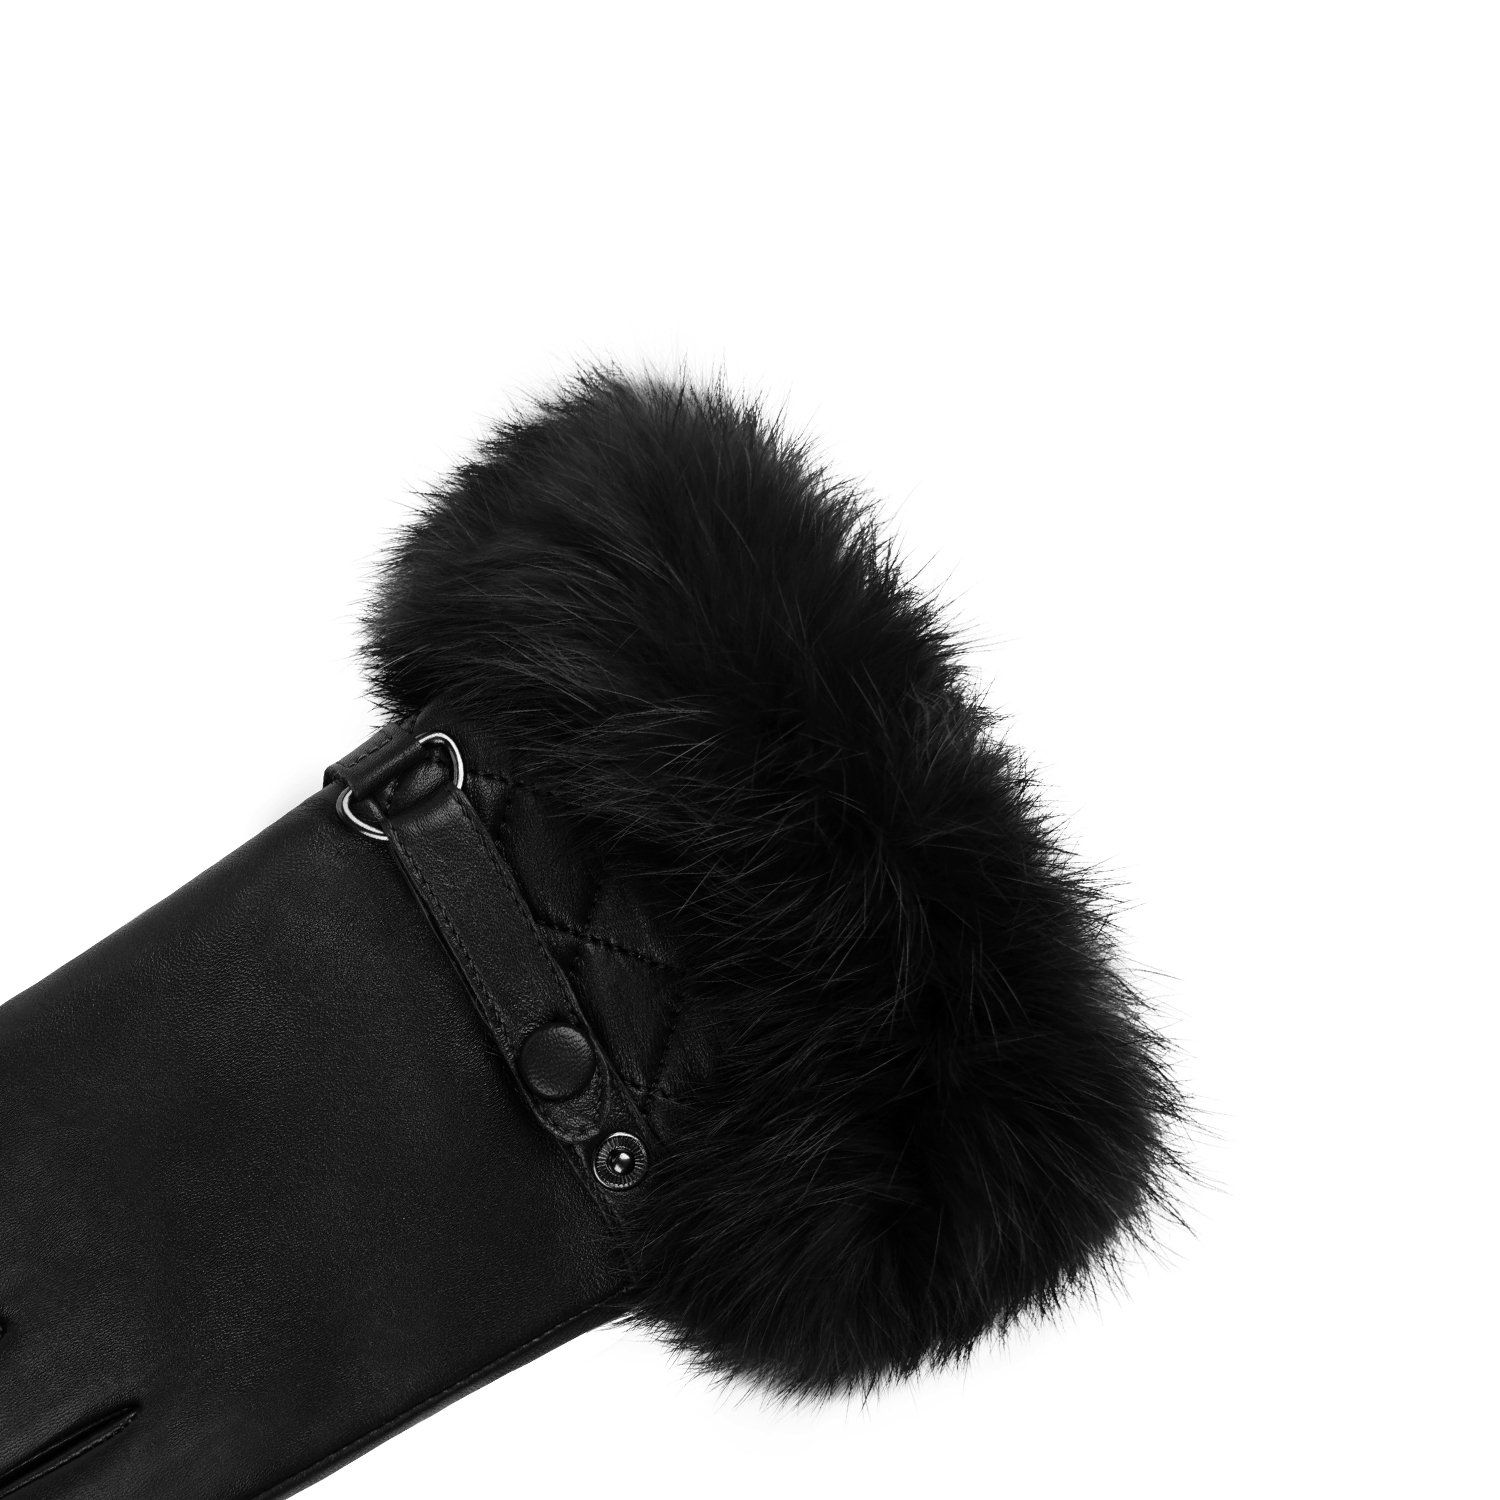 GSG Womens Luxury Italian Genuine Nappa Leather Gloves Fashion Fur Trim Full Palm Touchscreen Winter Warm Gloves Black 8.5 by GSG (Image #5)